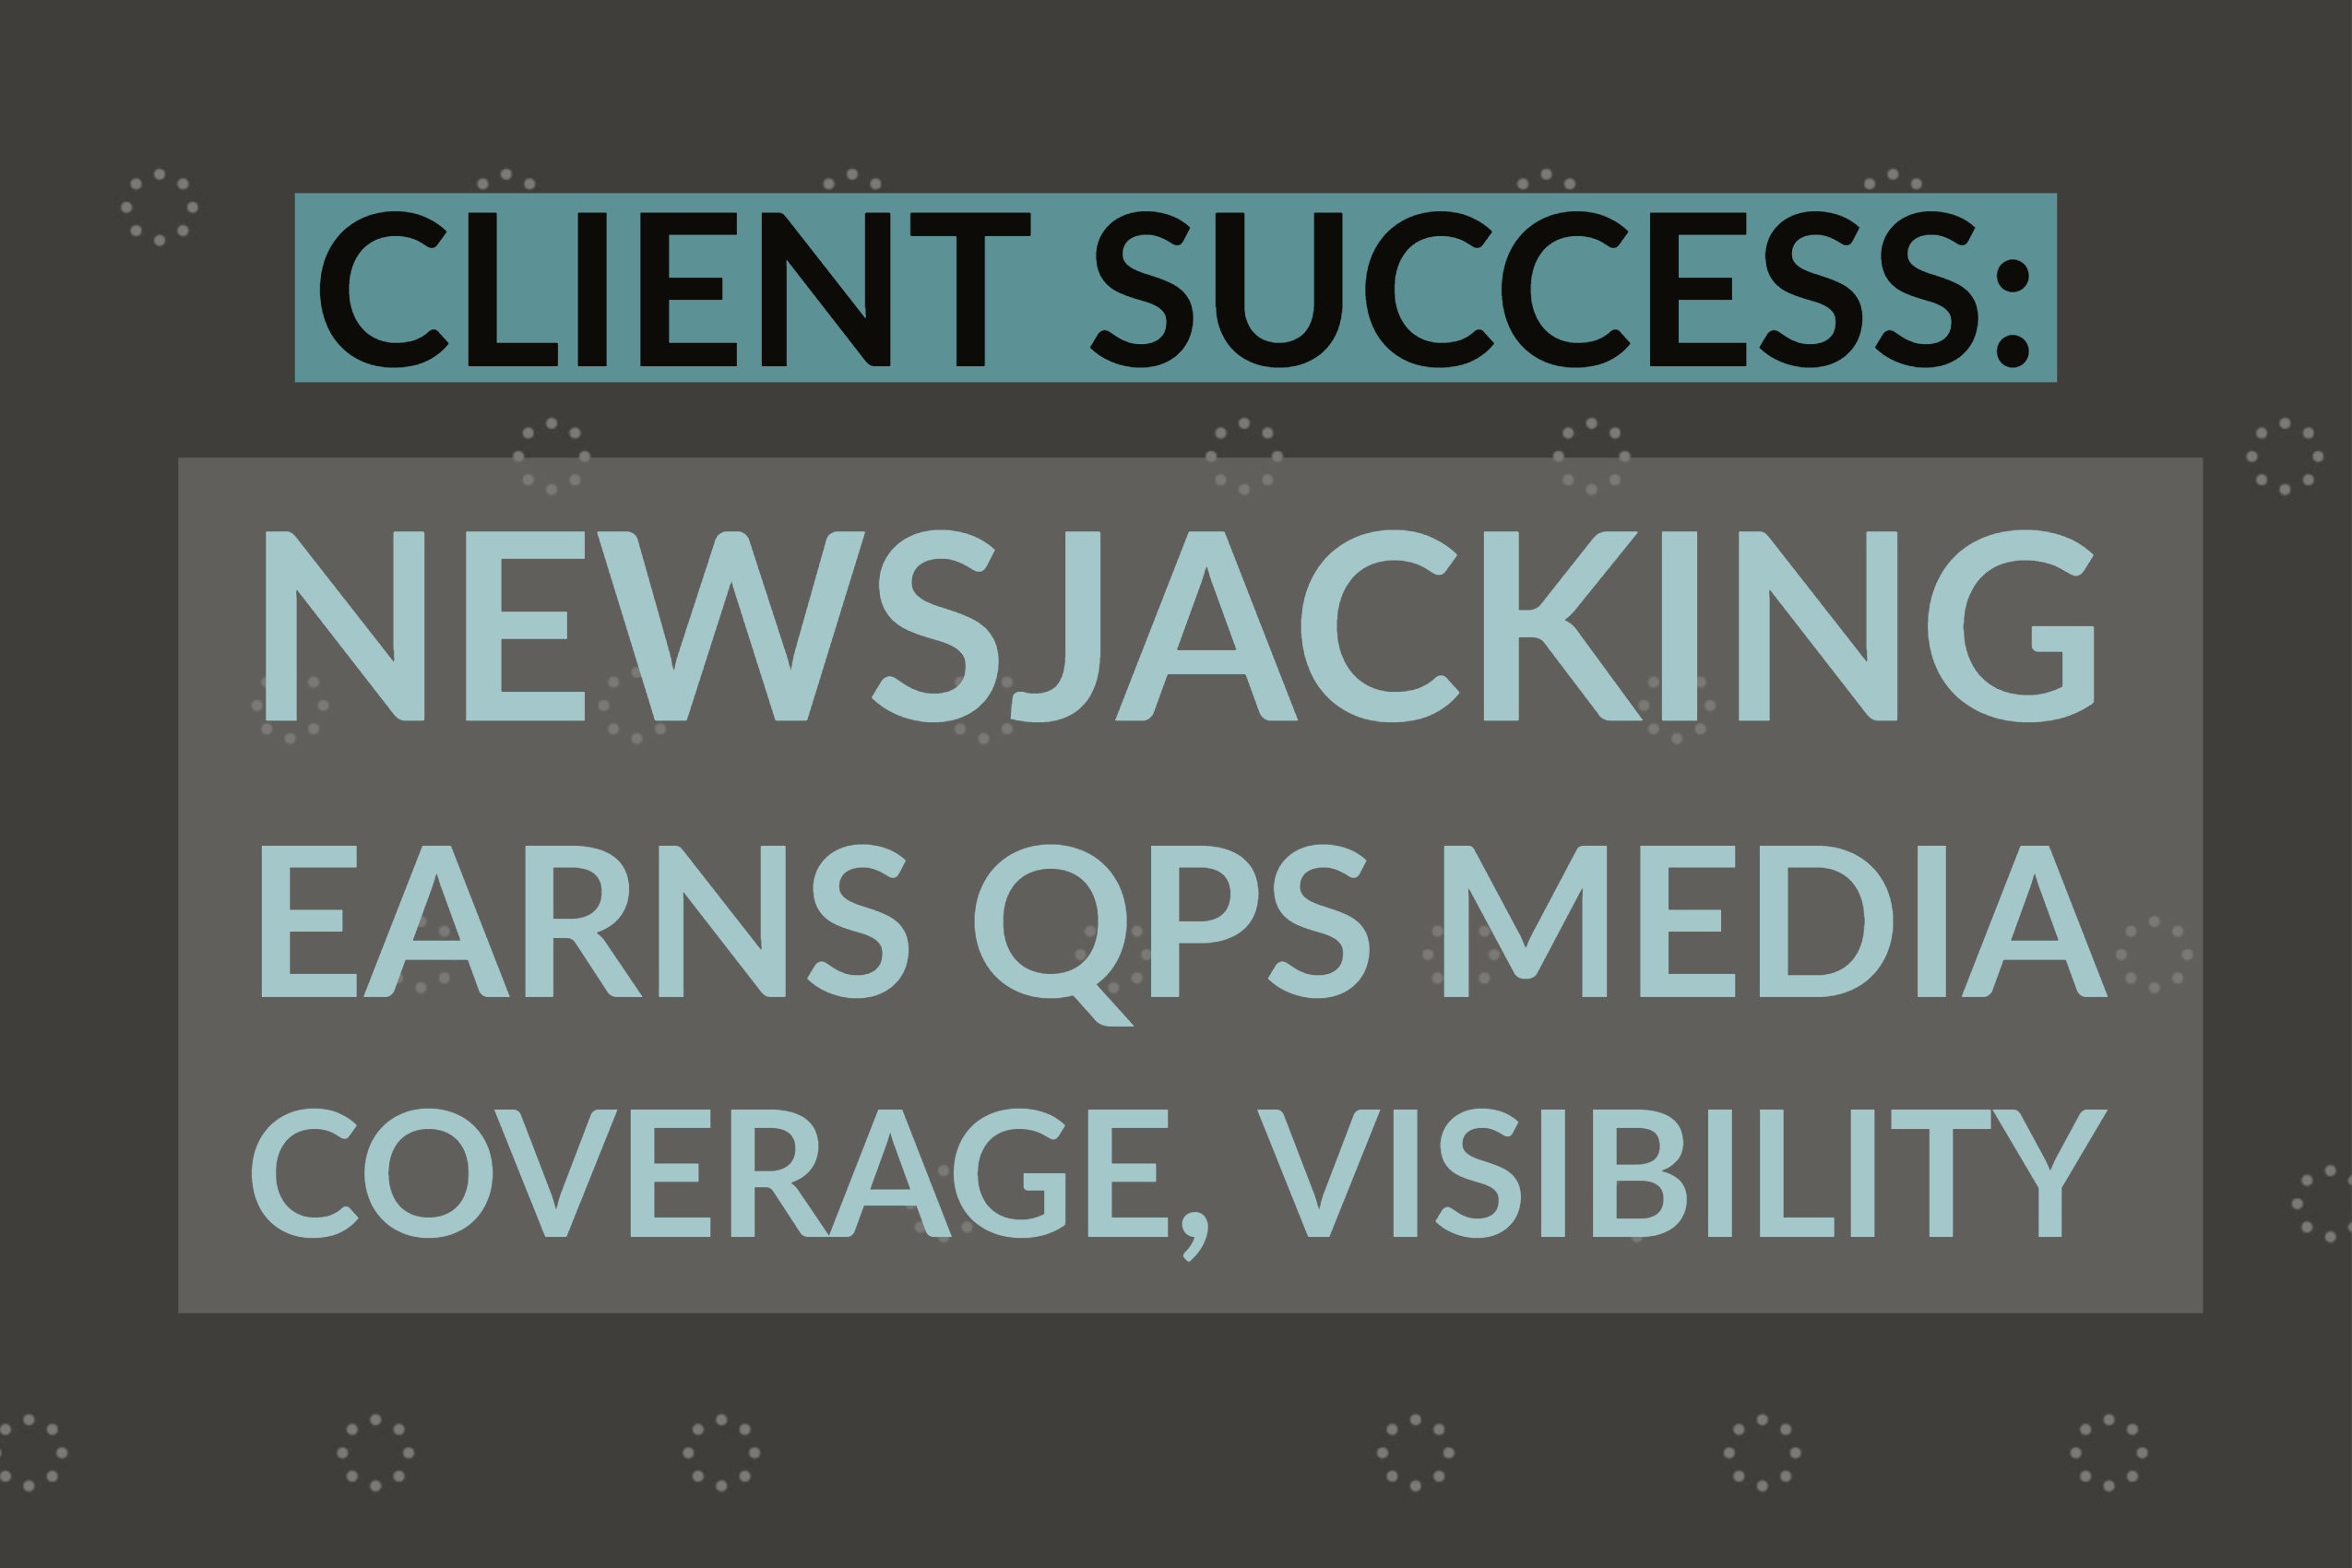 Client Success_ Newsjacking Earns QPS Media Coverage, Visibility